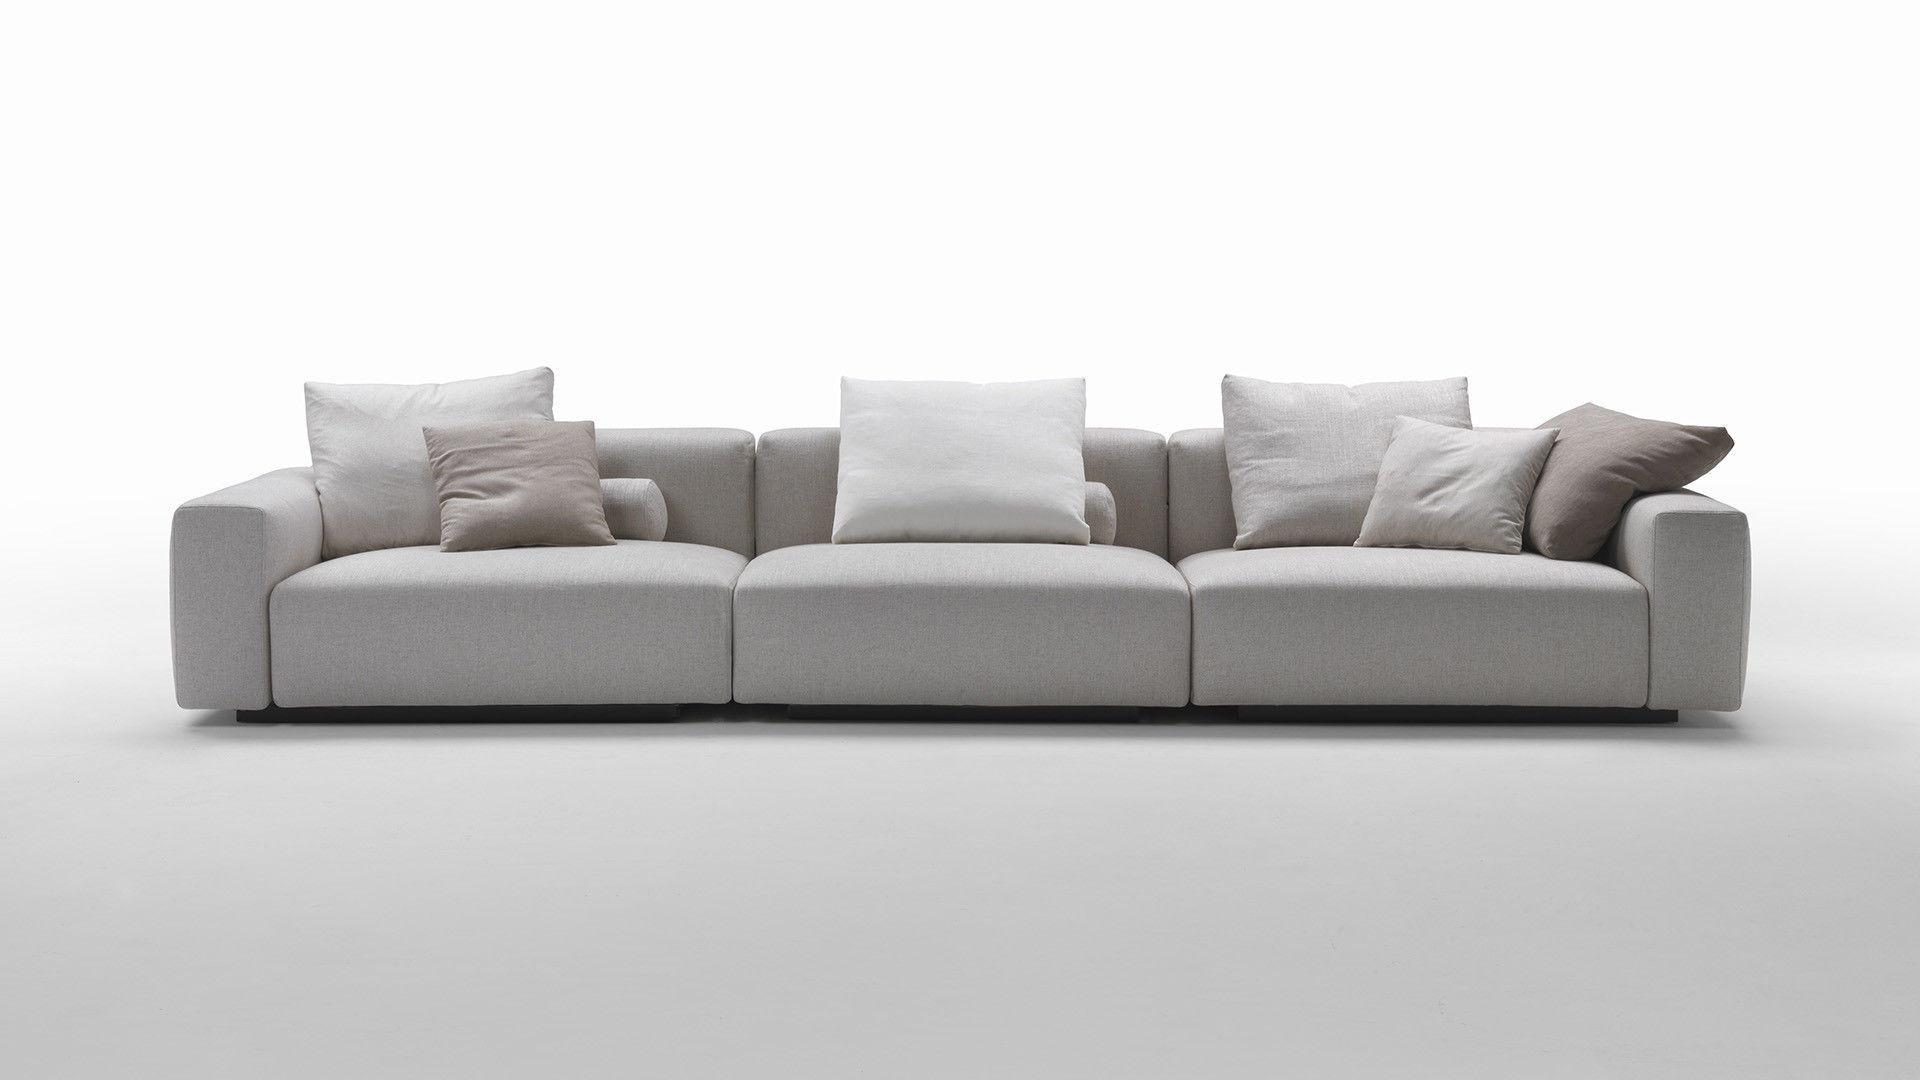 Modular Leather Sofas Sofa Modern